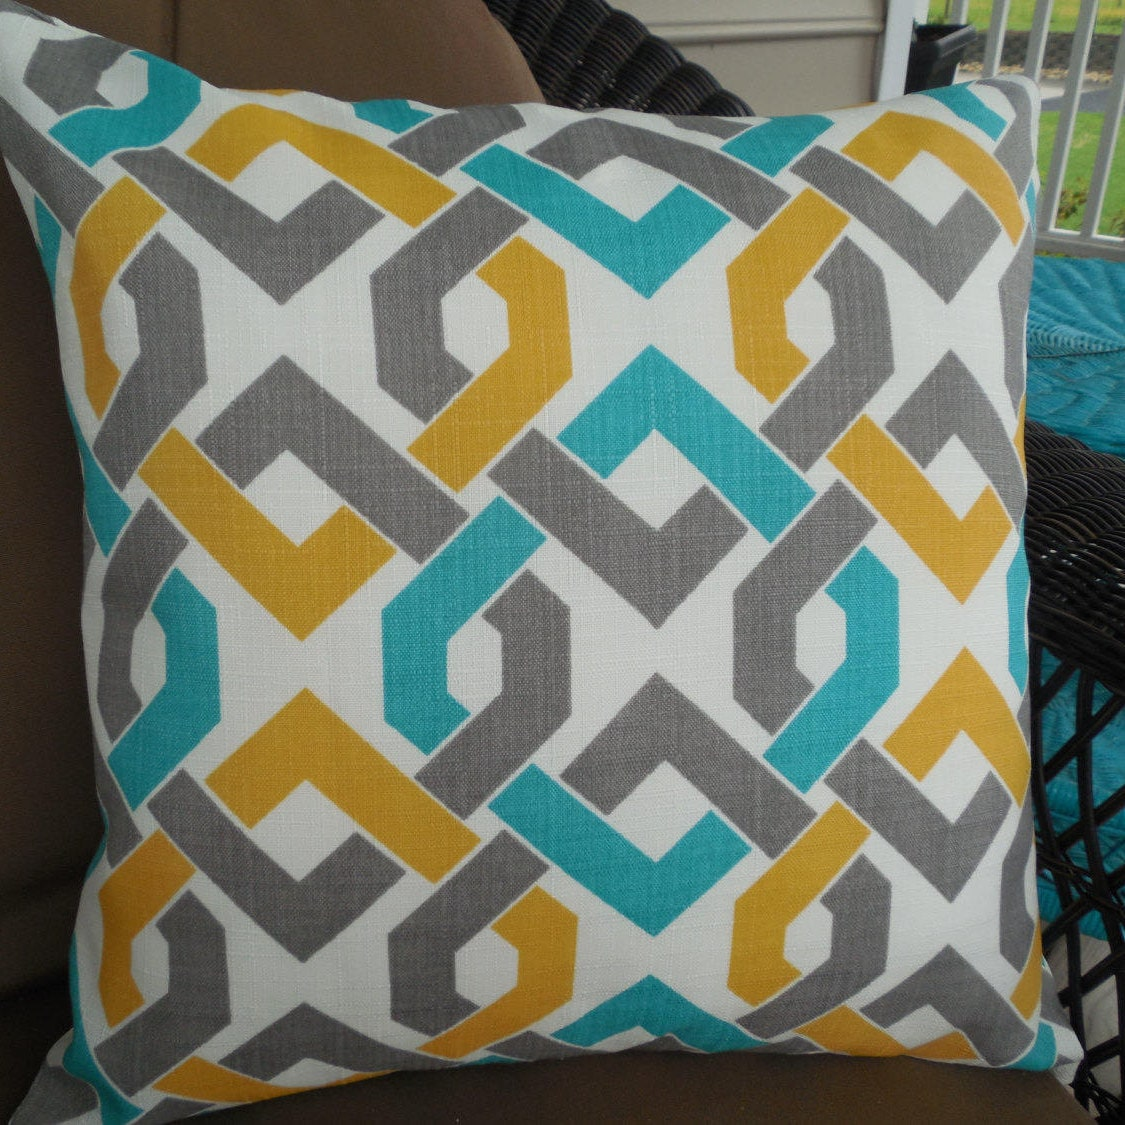 CLEARANCE IKAT Outdoor Pillow Cover Teal Gray Yellow Patio Porch Decorative  Accent Throw Pillow Zipper Closure Chain Links